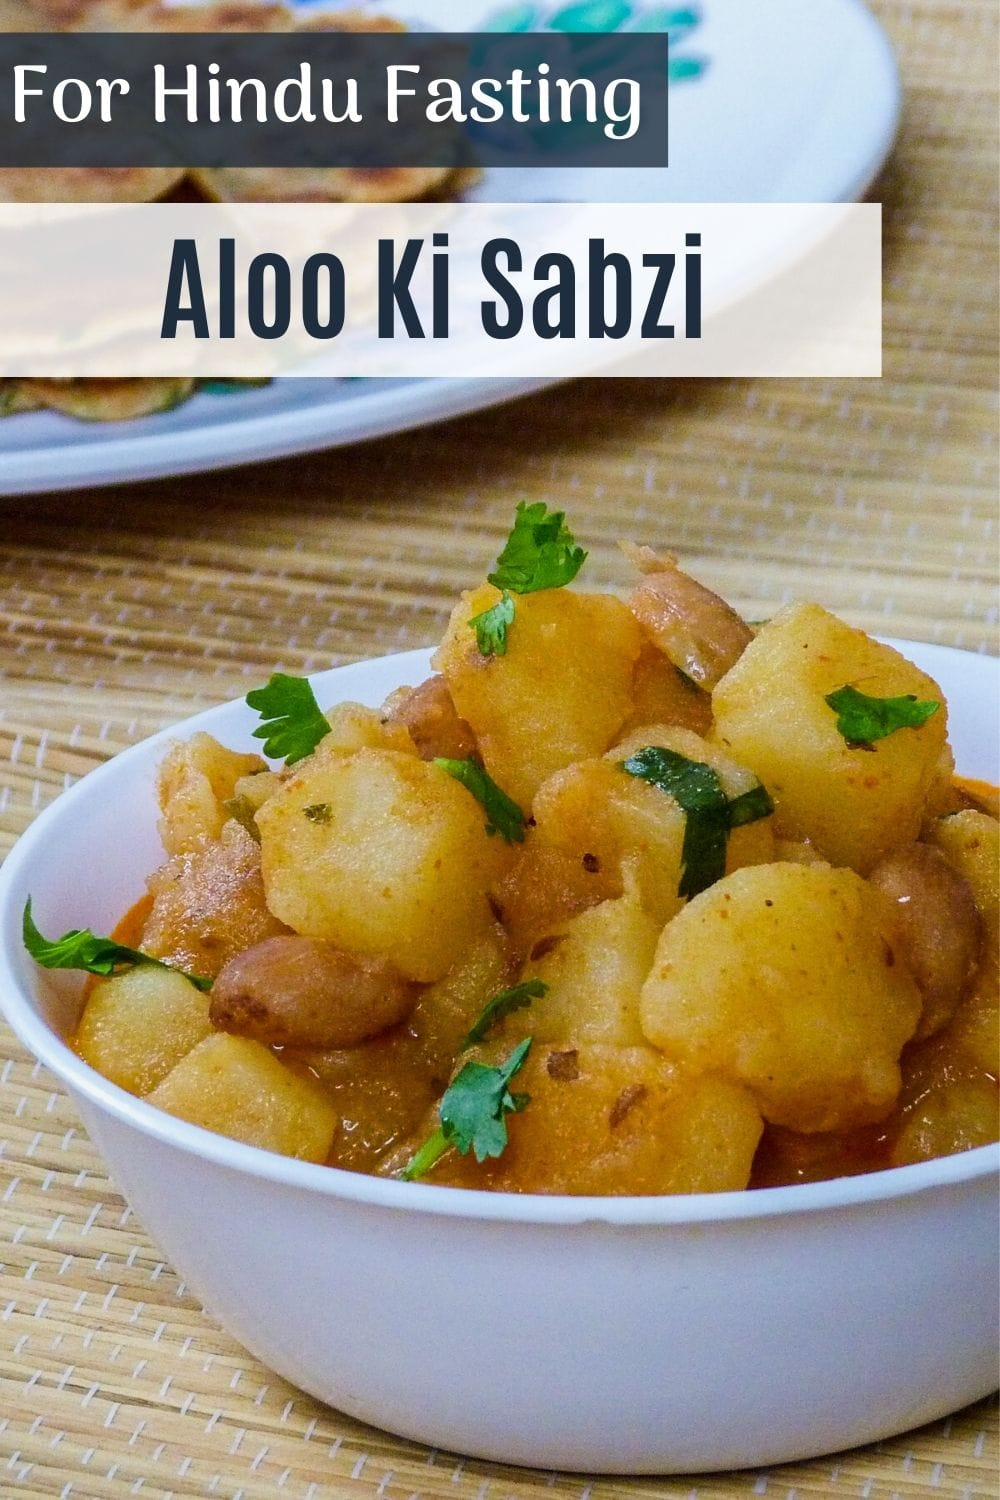 vrat wale aloo ki sabzi in a bowl with garnish of cilantro and text on top of the image for pinterest